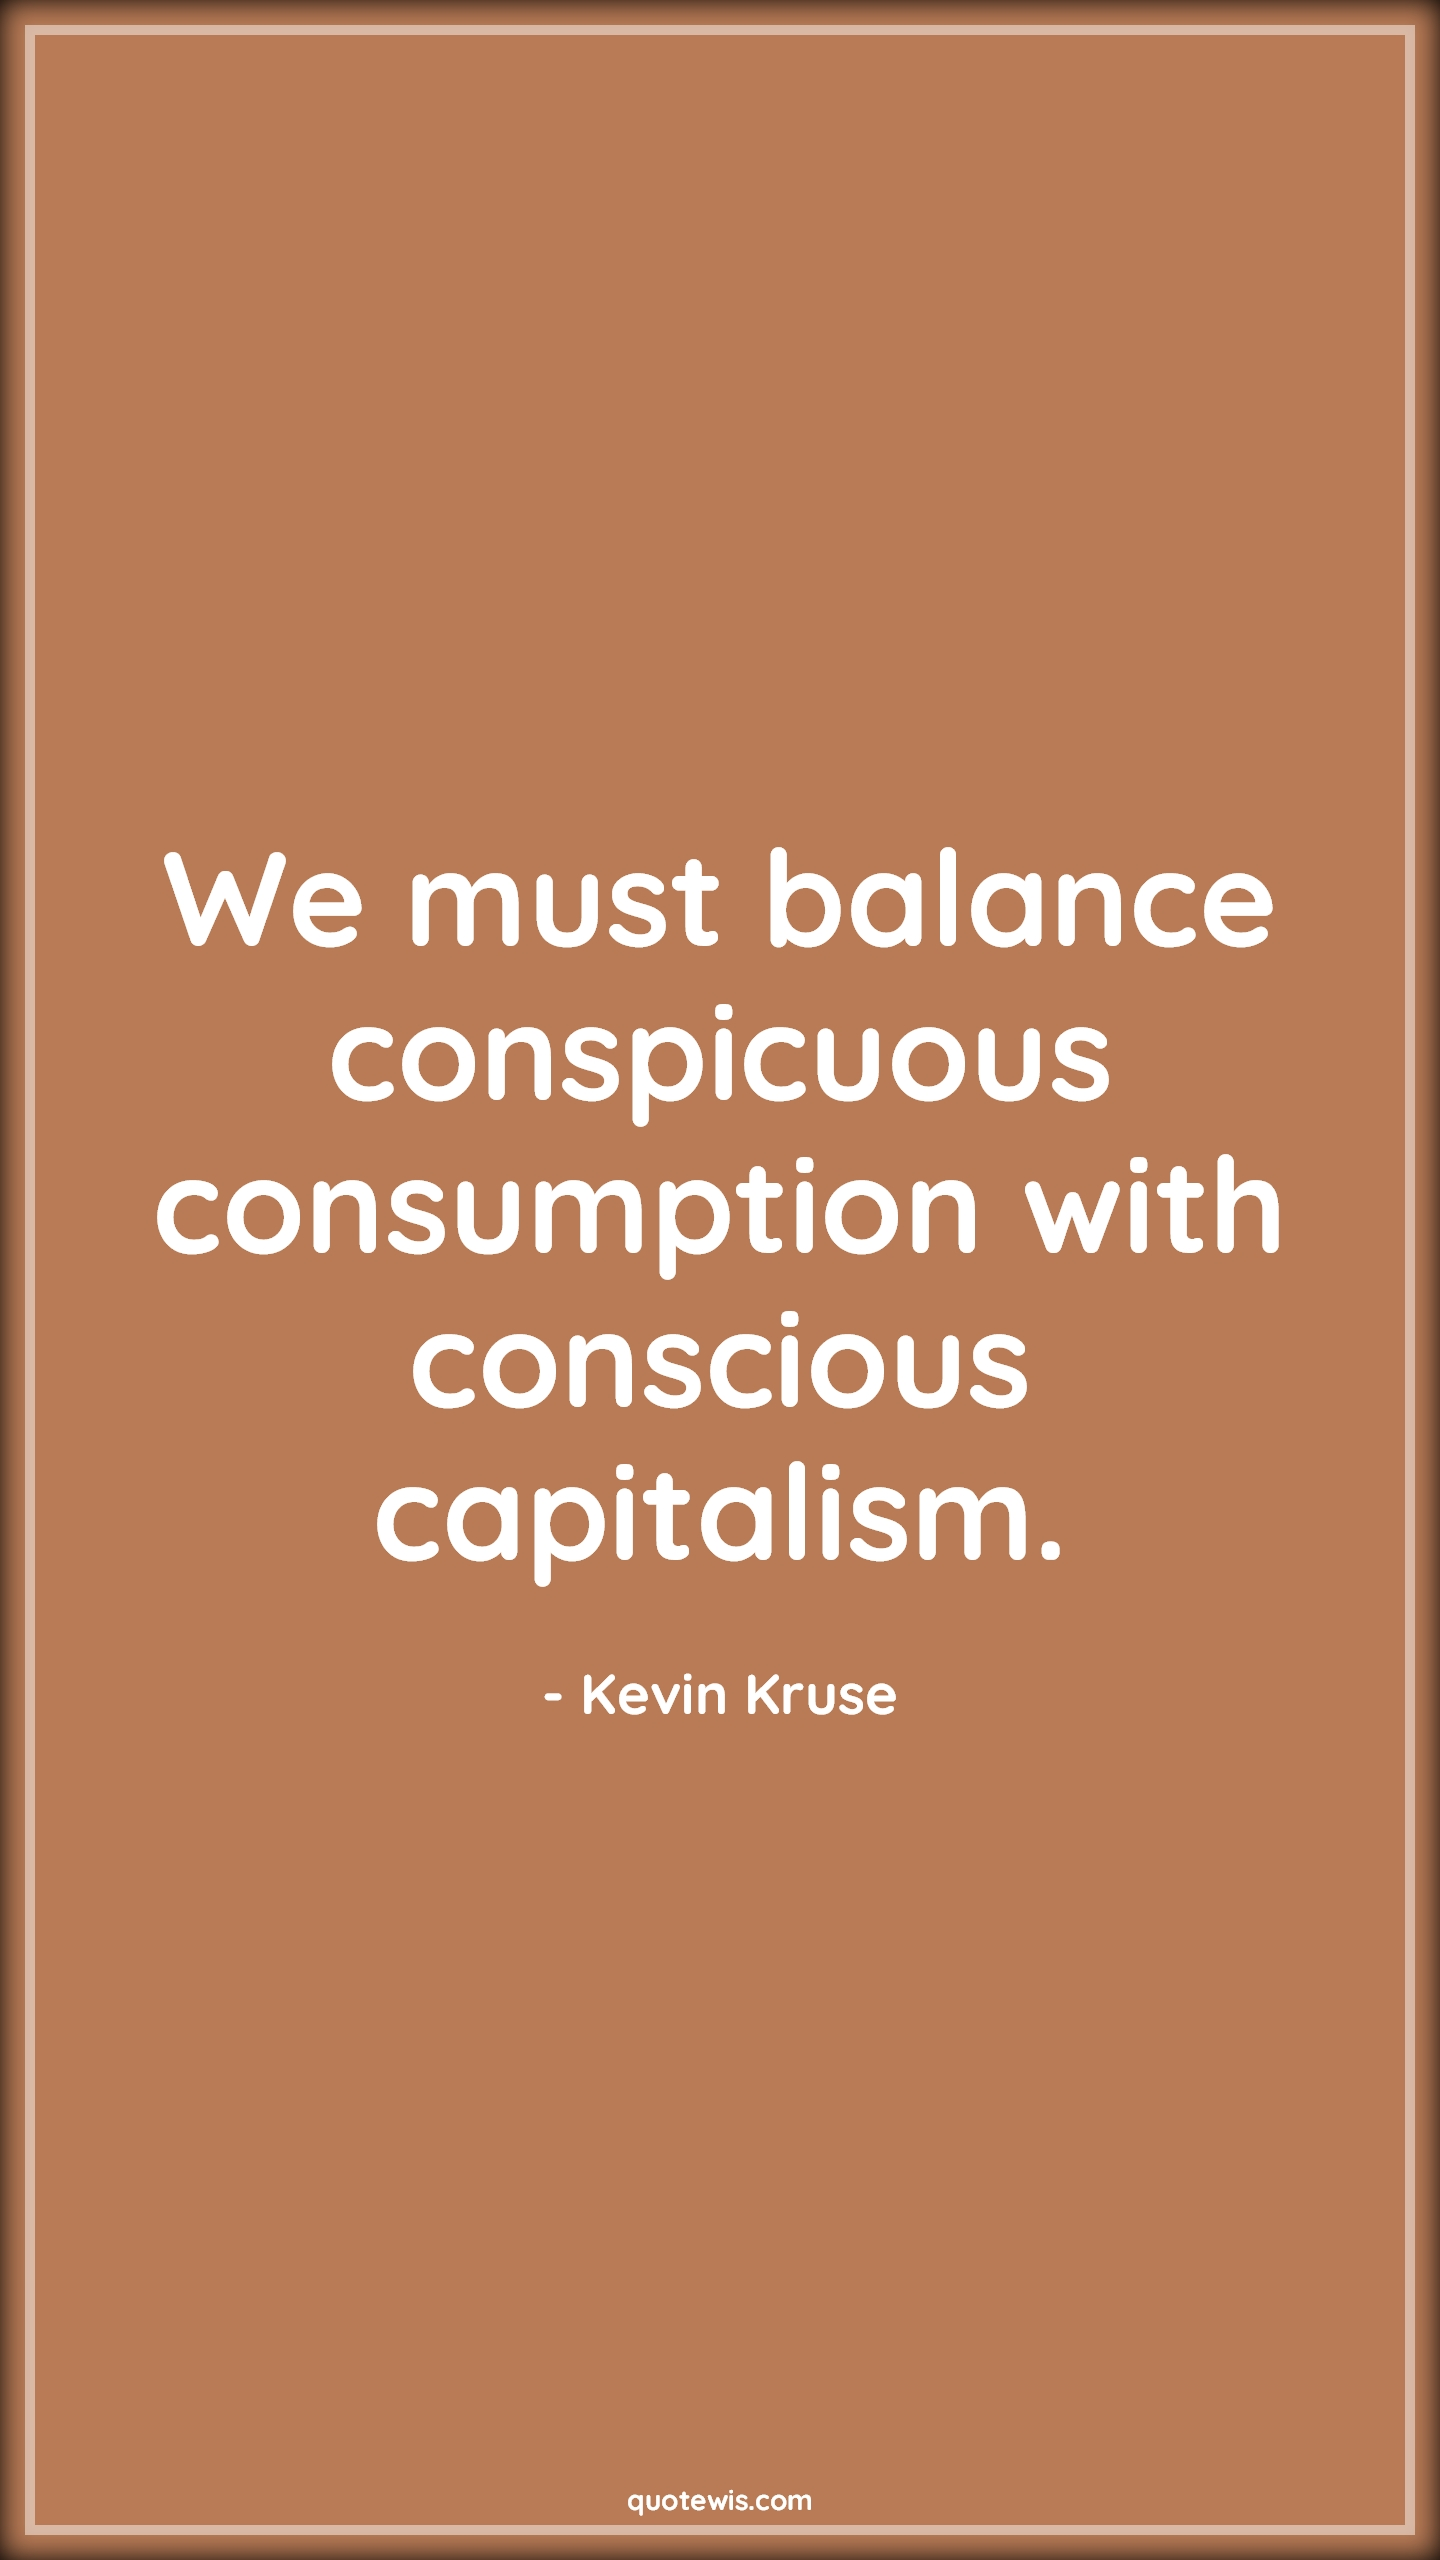 We must balance conspicuous consumption with conscious capitalism.